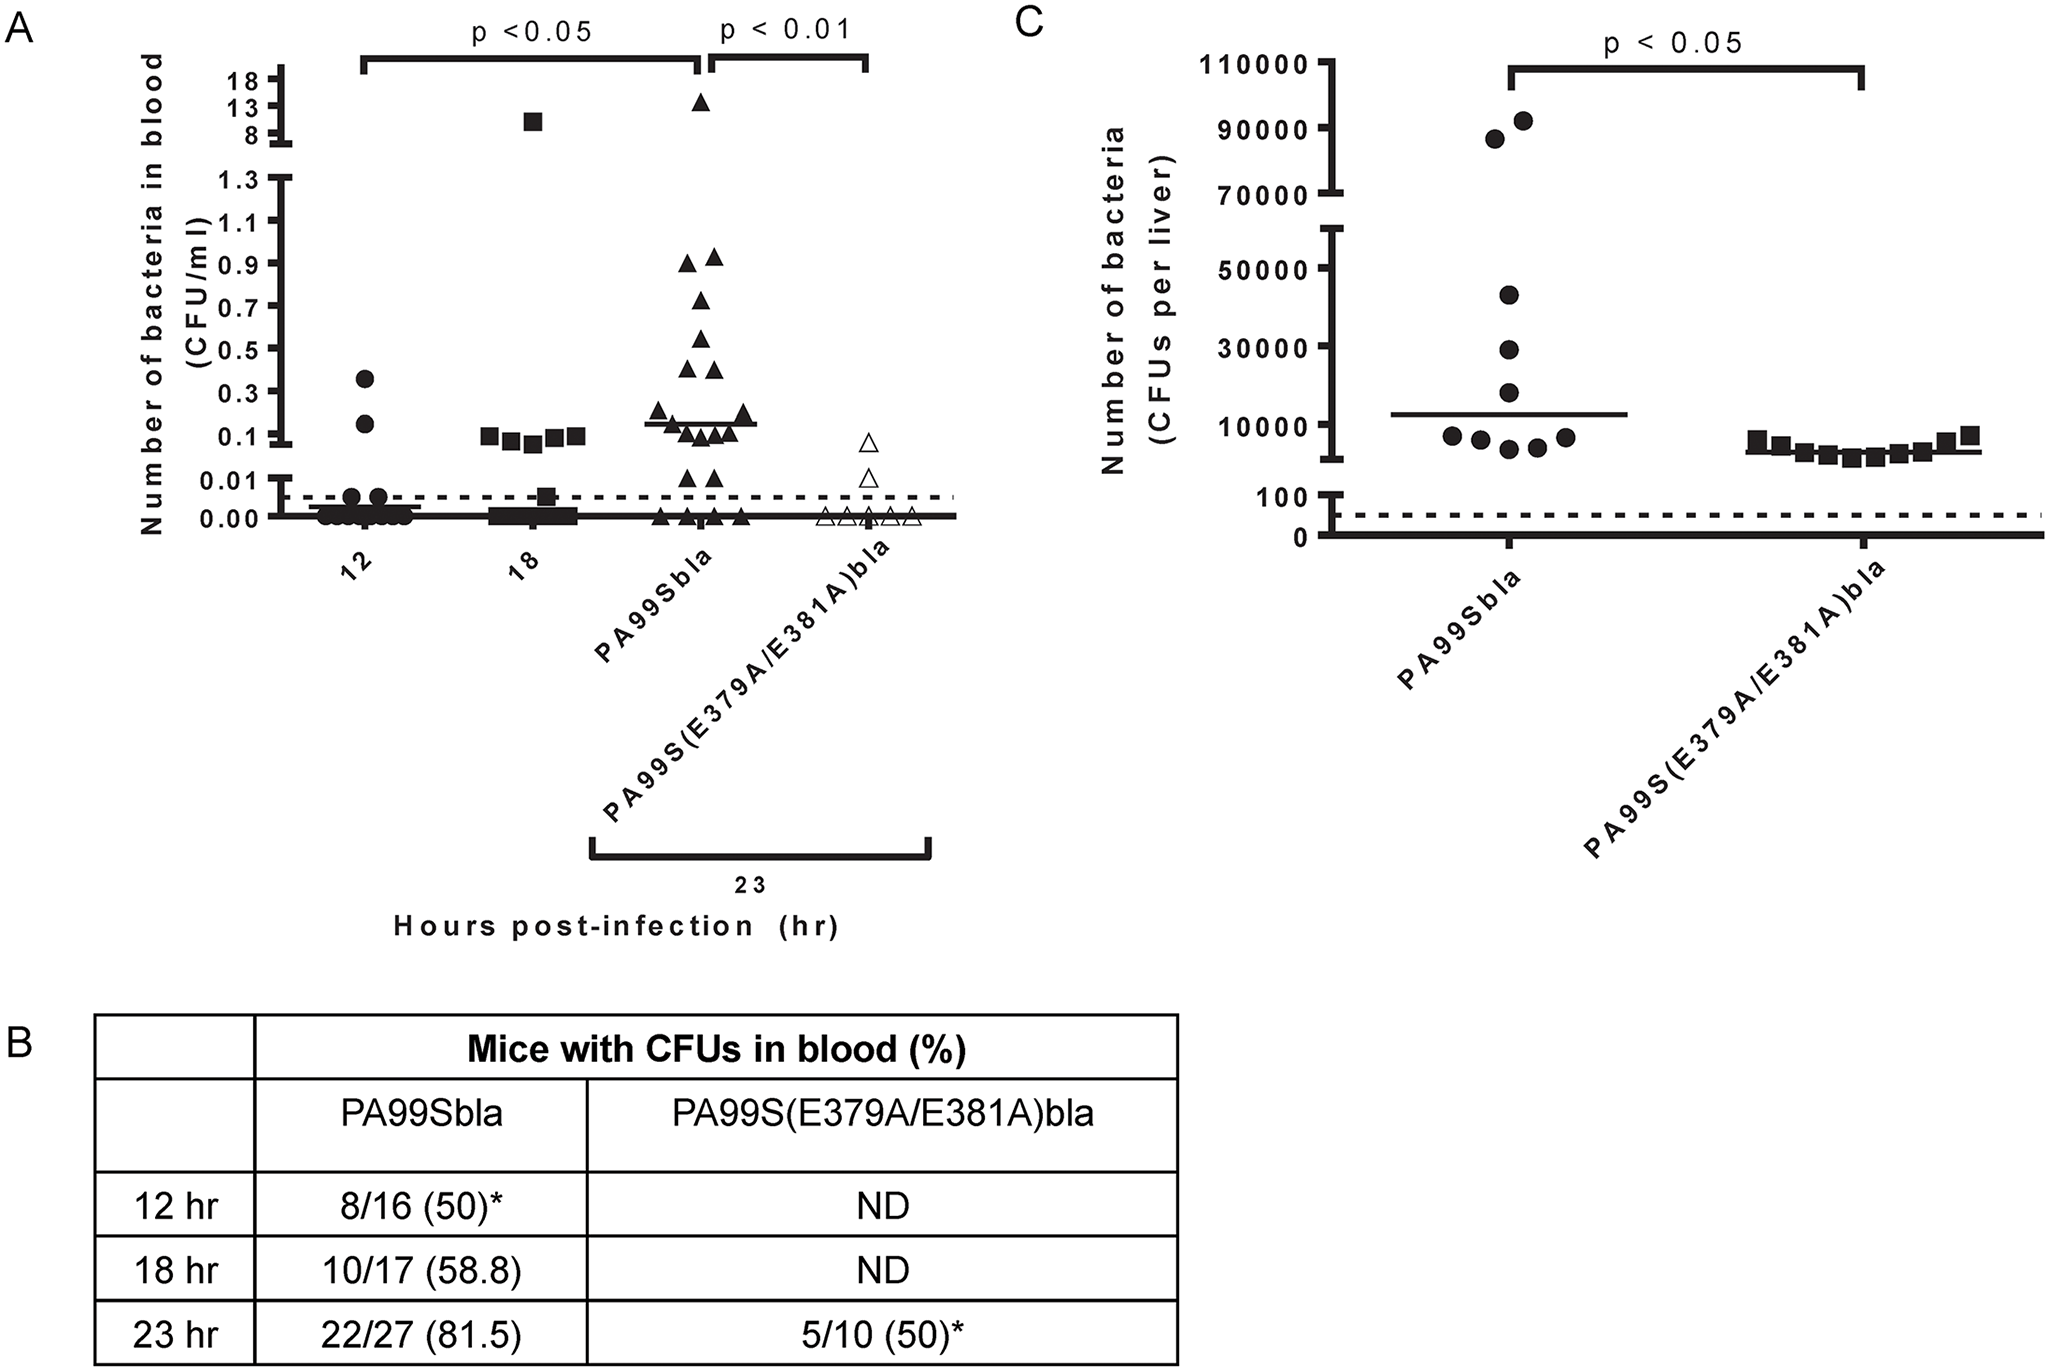 Bacterial dissemination into the bloodstream increases over time during pneumonia and is dependent on the ADPRT domain of ExoS.